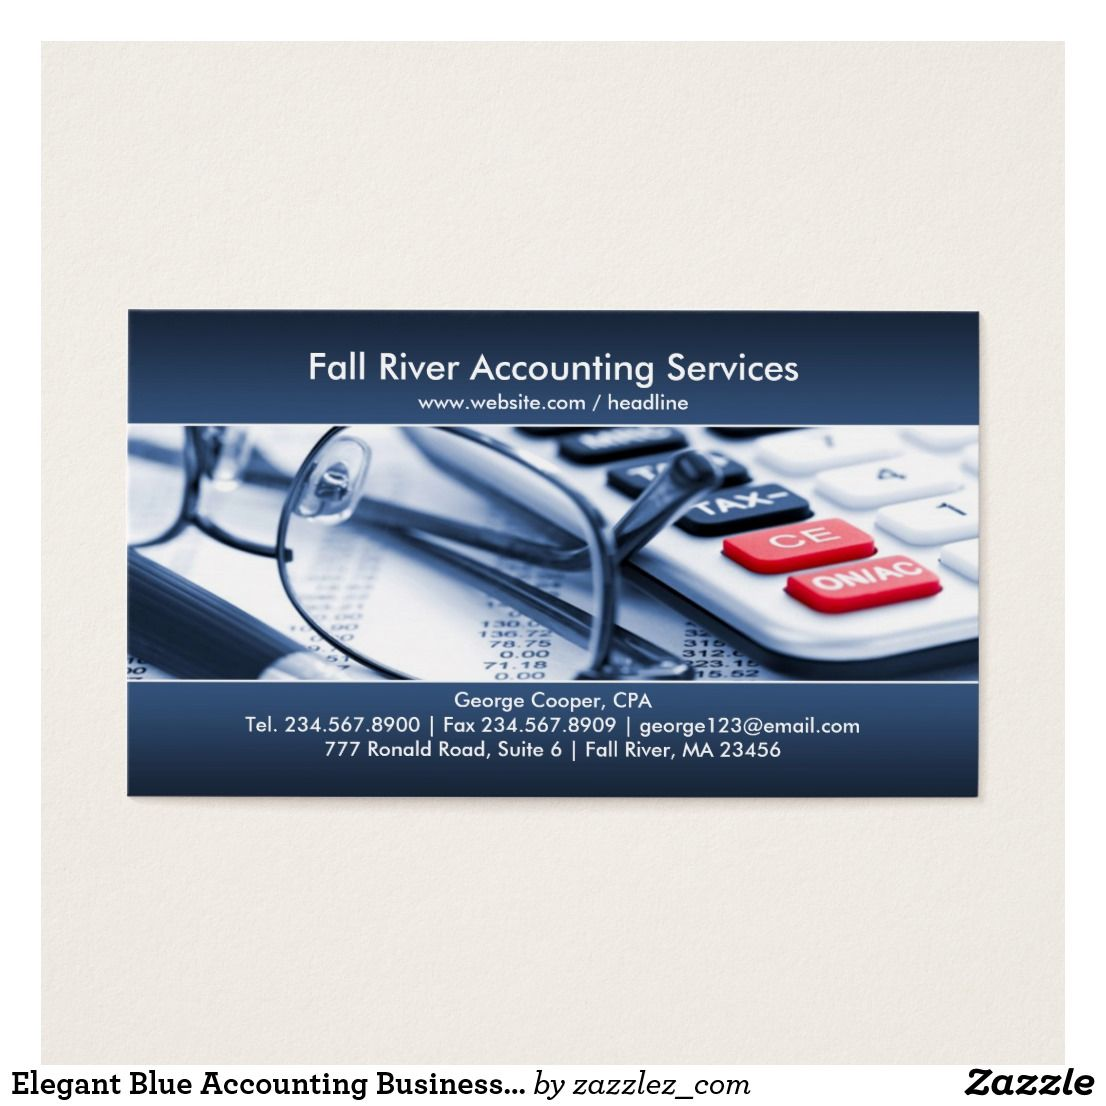 Elegant Blue Accounting Business Card | Business cards and Business